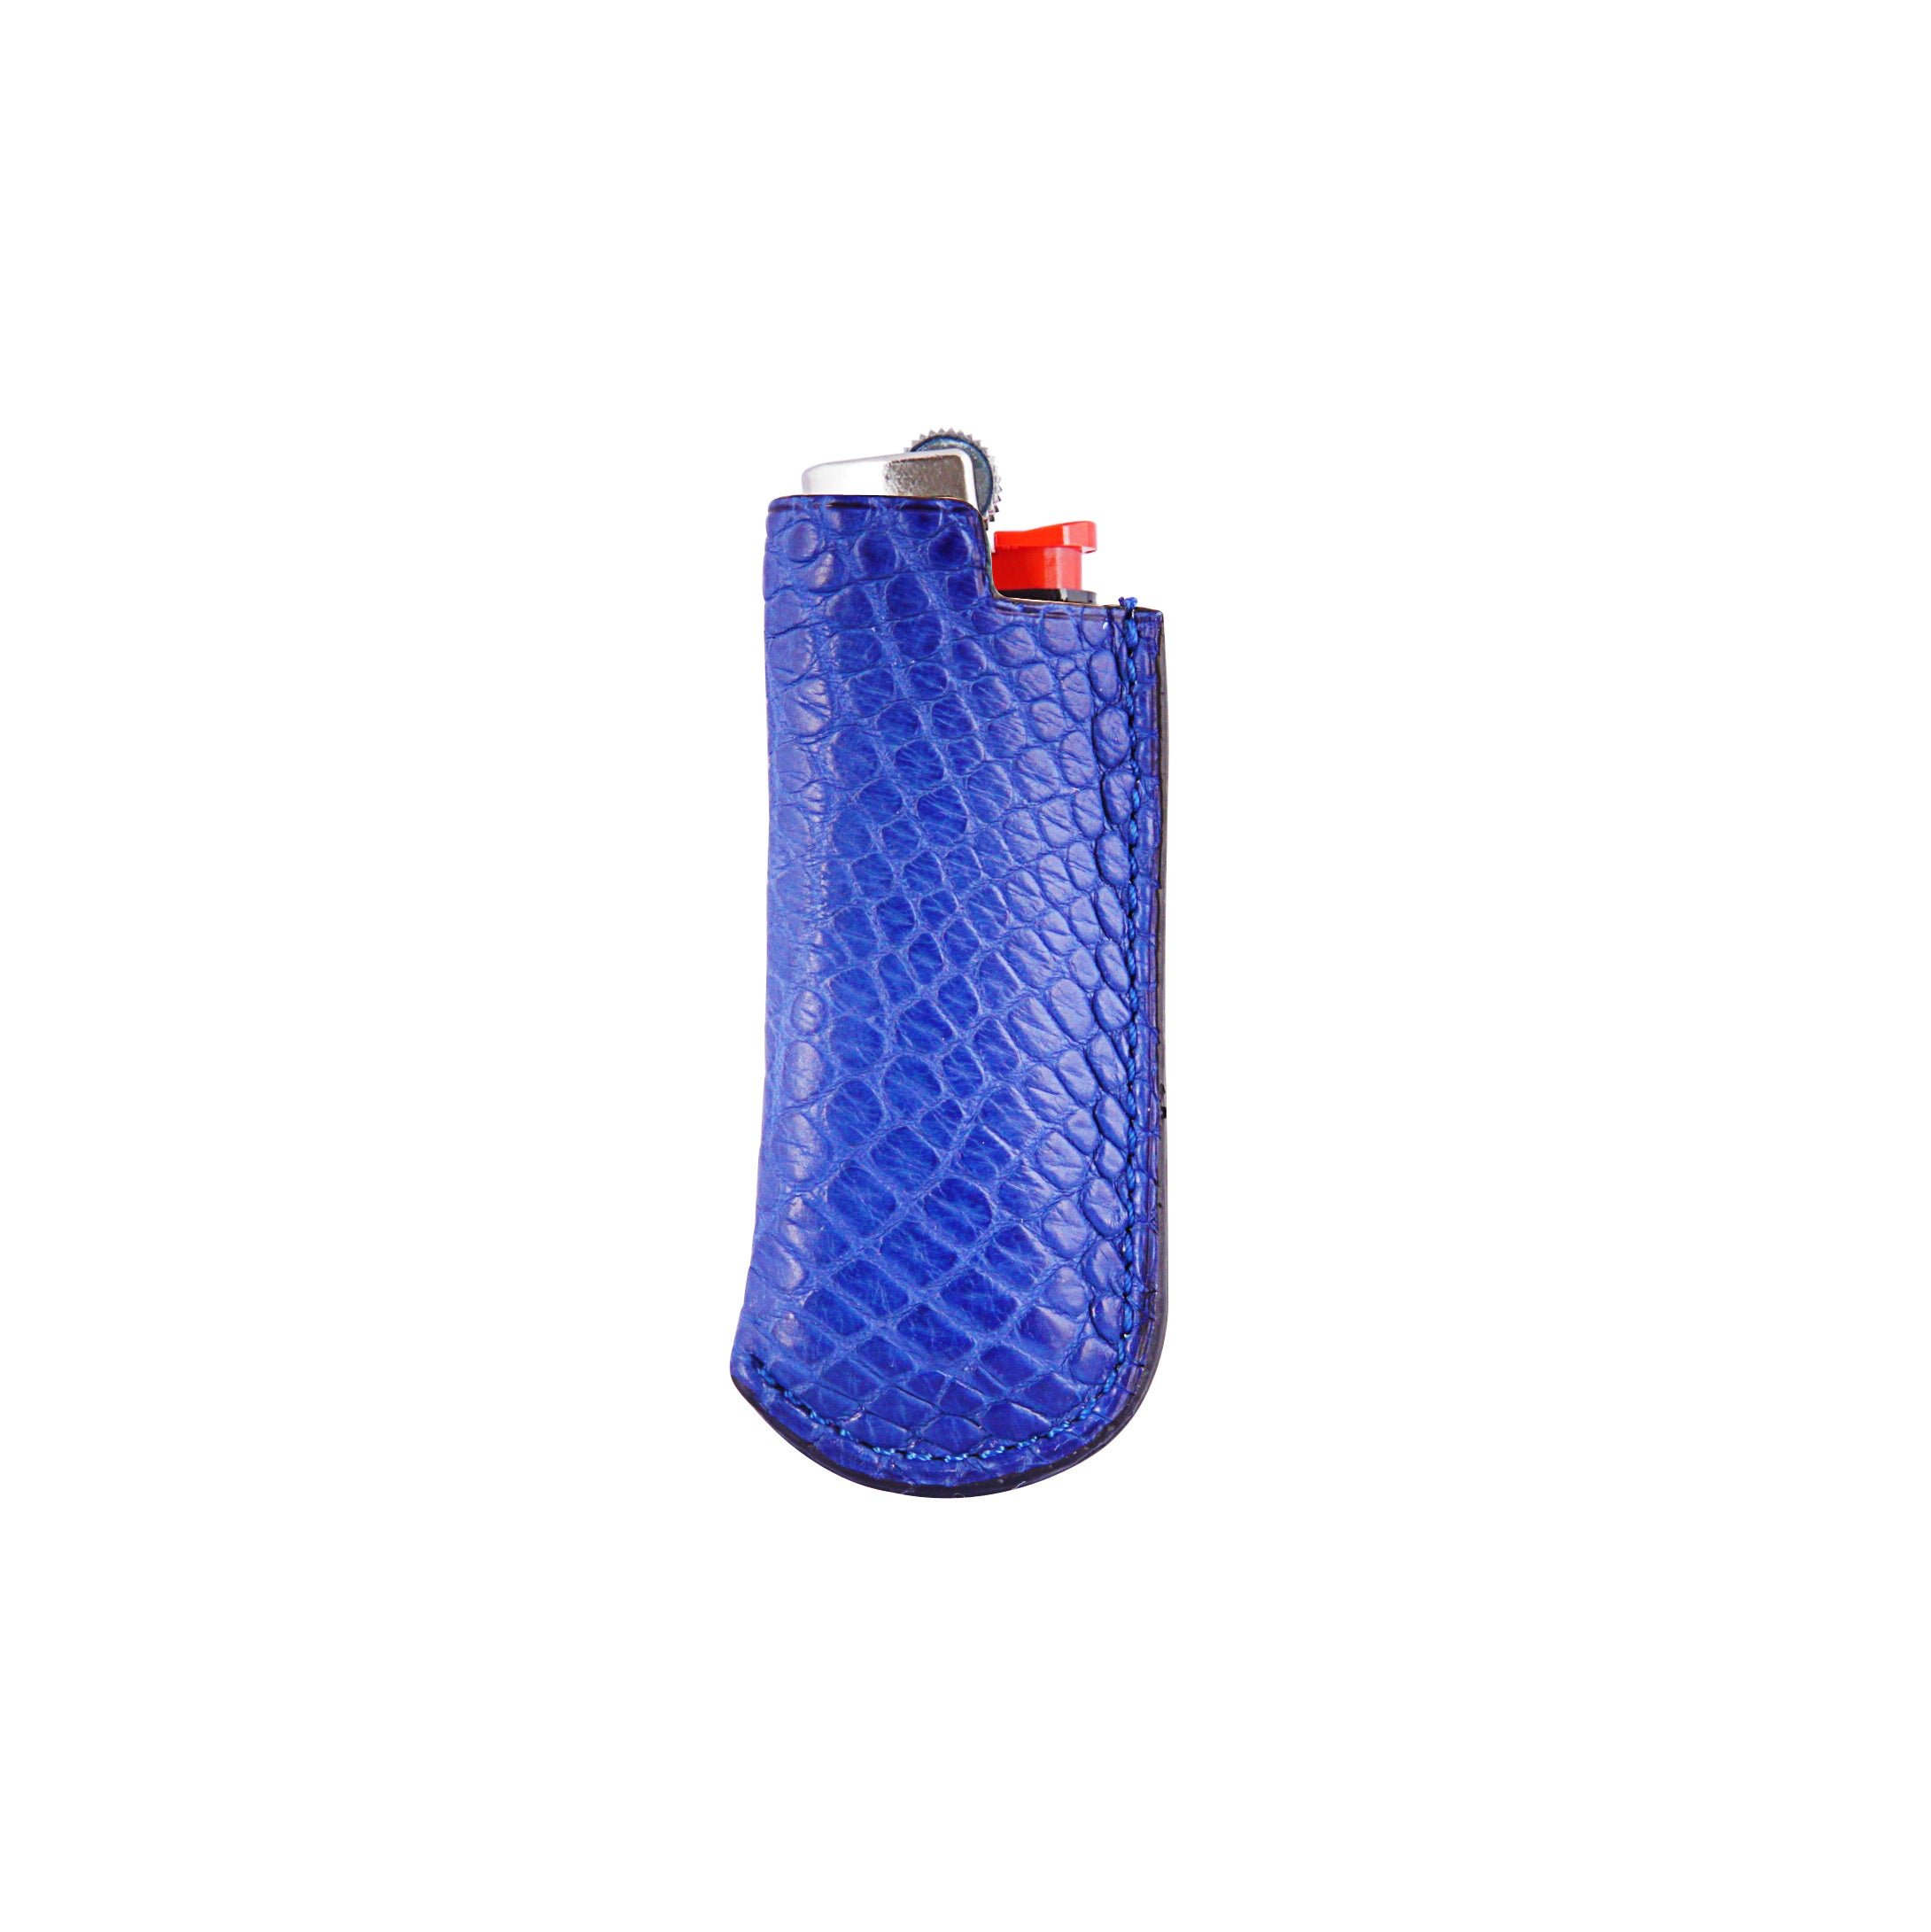 Lighter Case - Royal Blue Crocodile Leather